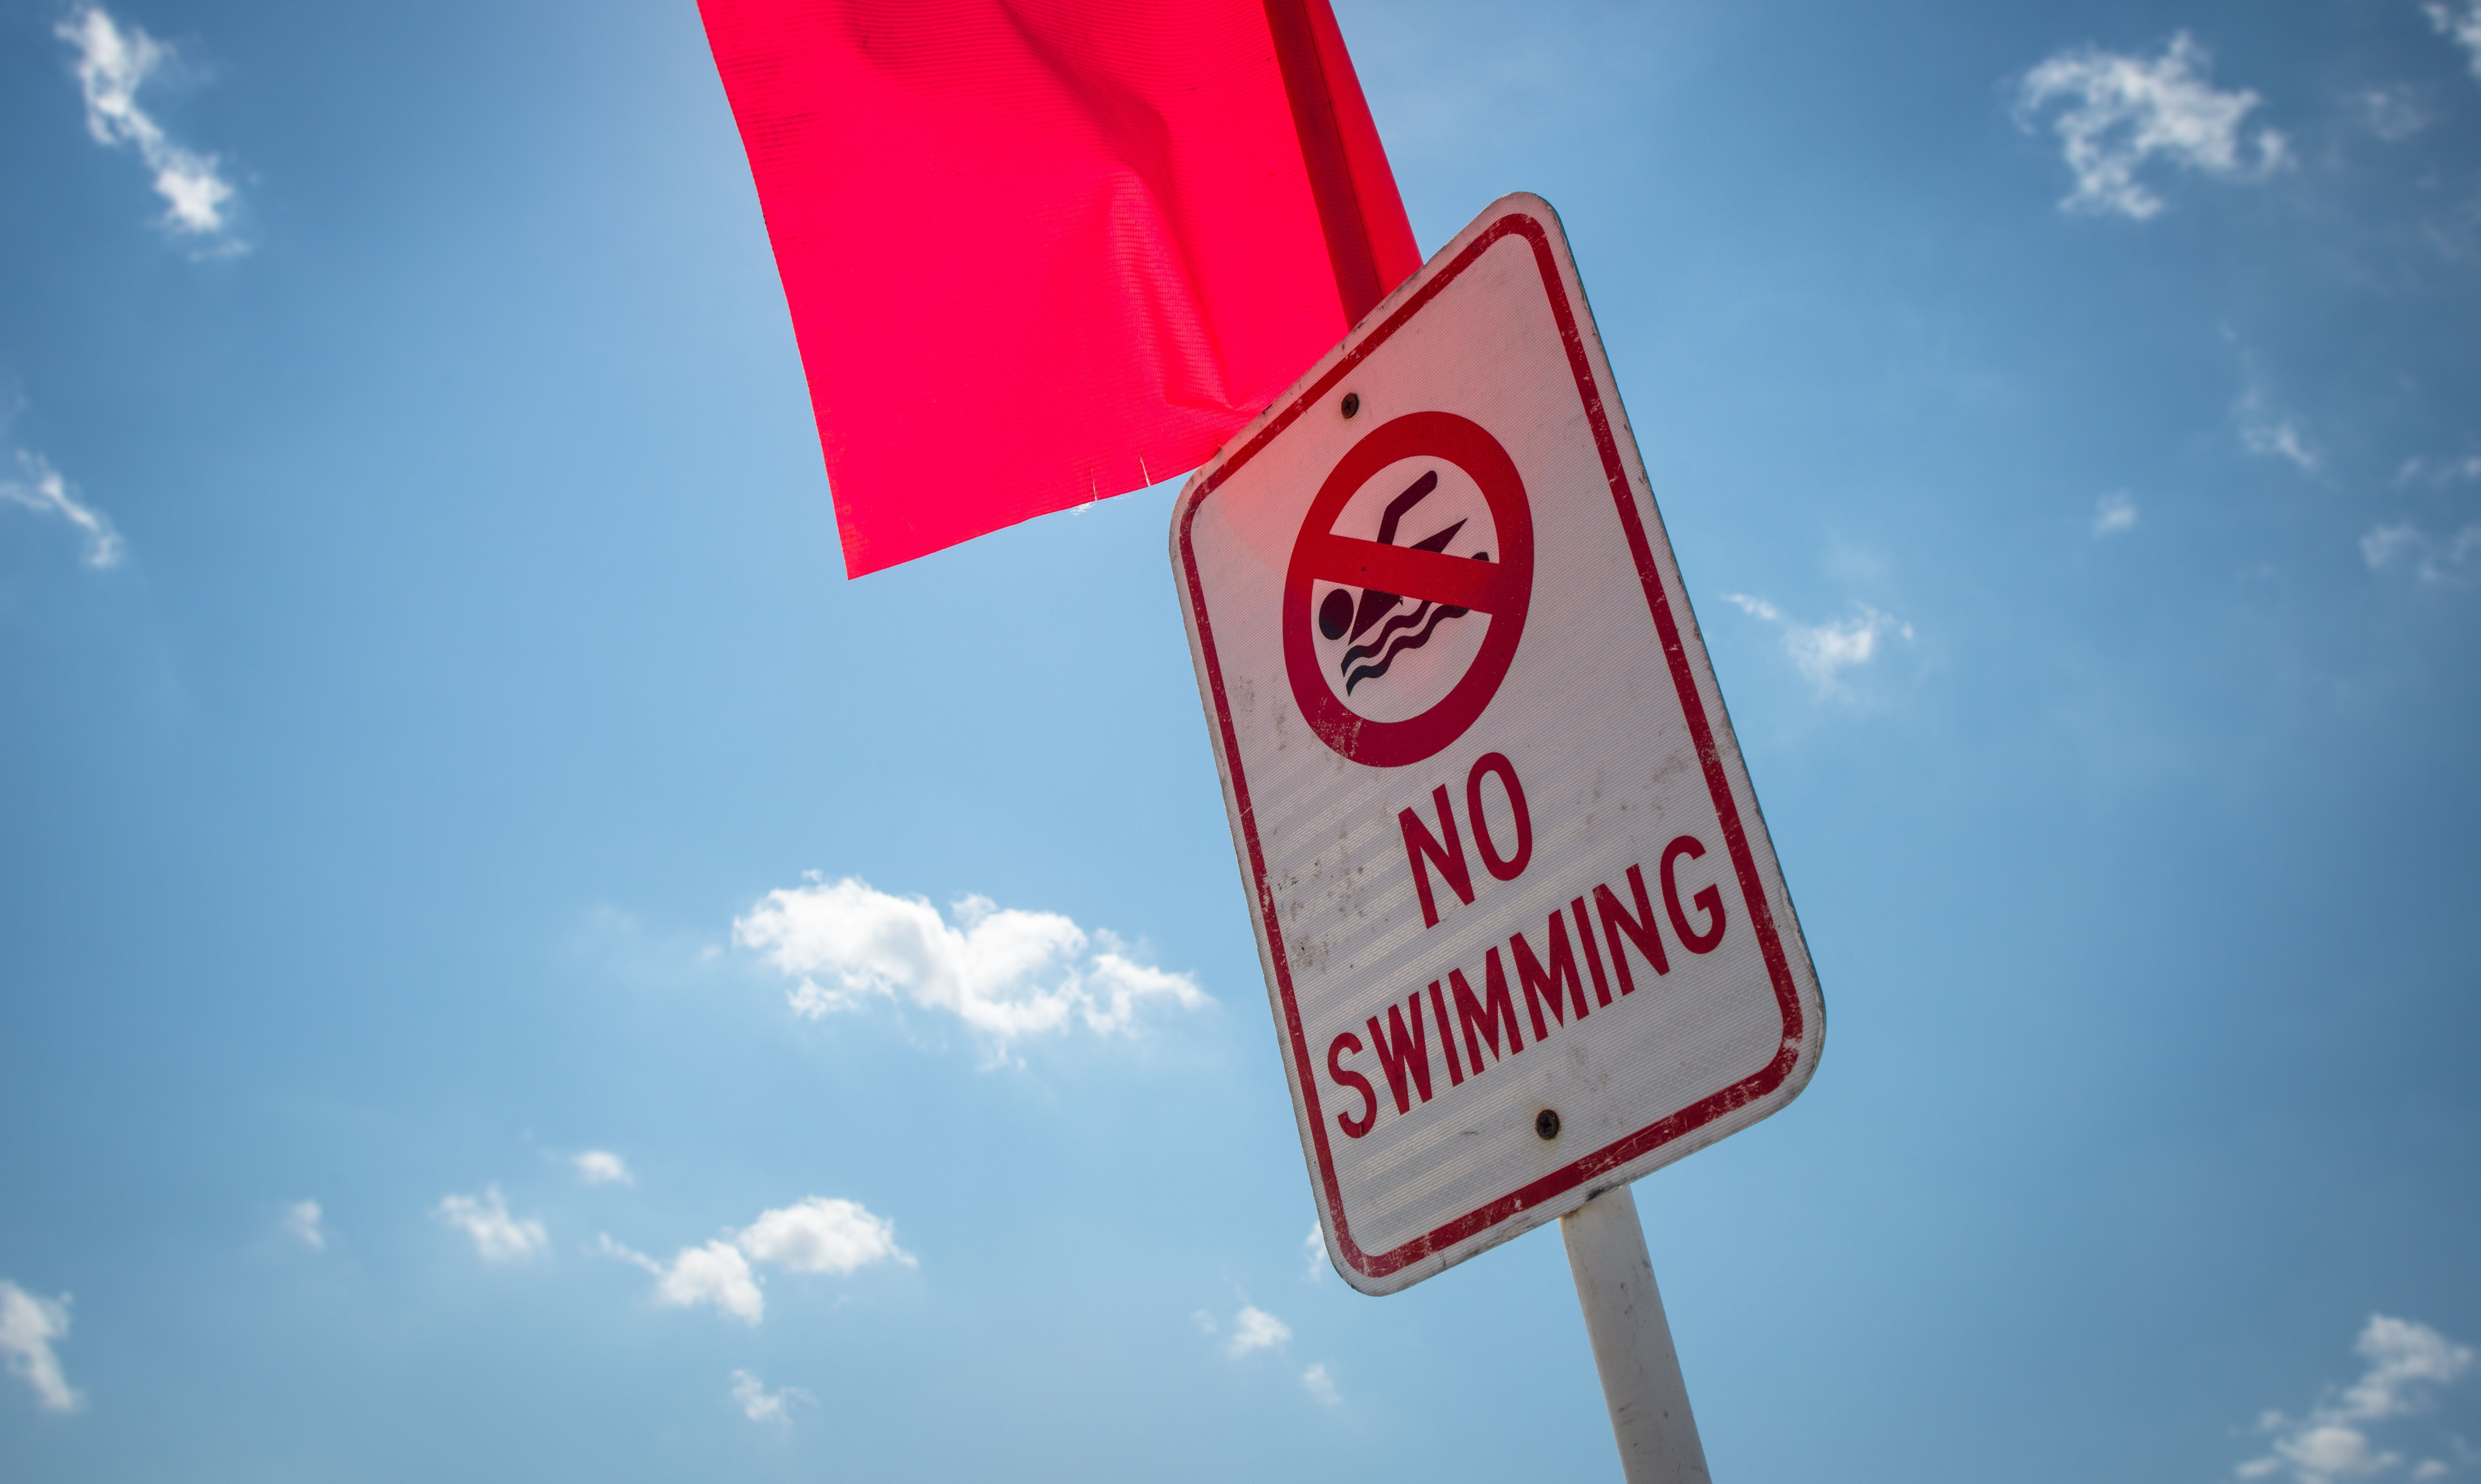 A 'no swimming' sign and a bright red flag warn potential swimmers of danger.